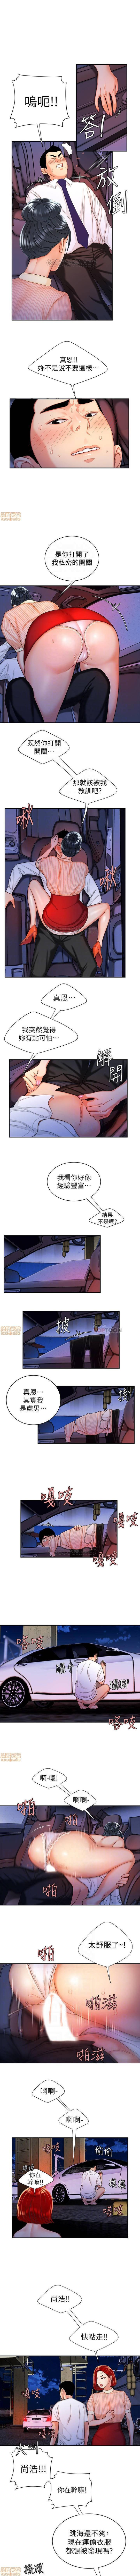 DELIVERY MAN | 幸福外卖员 Ch. 9 3